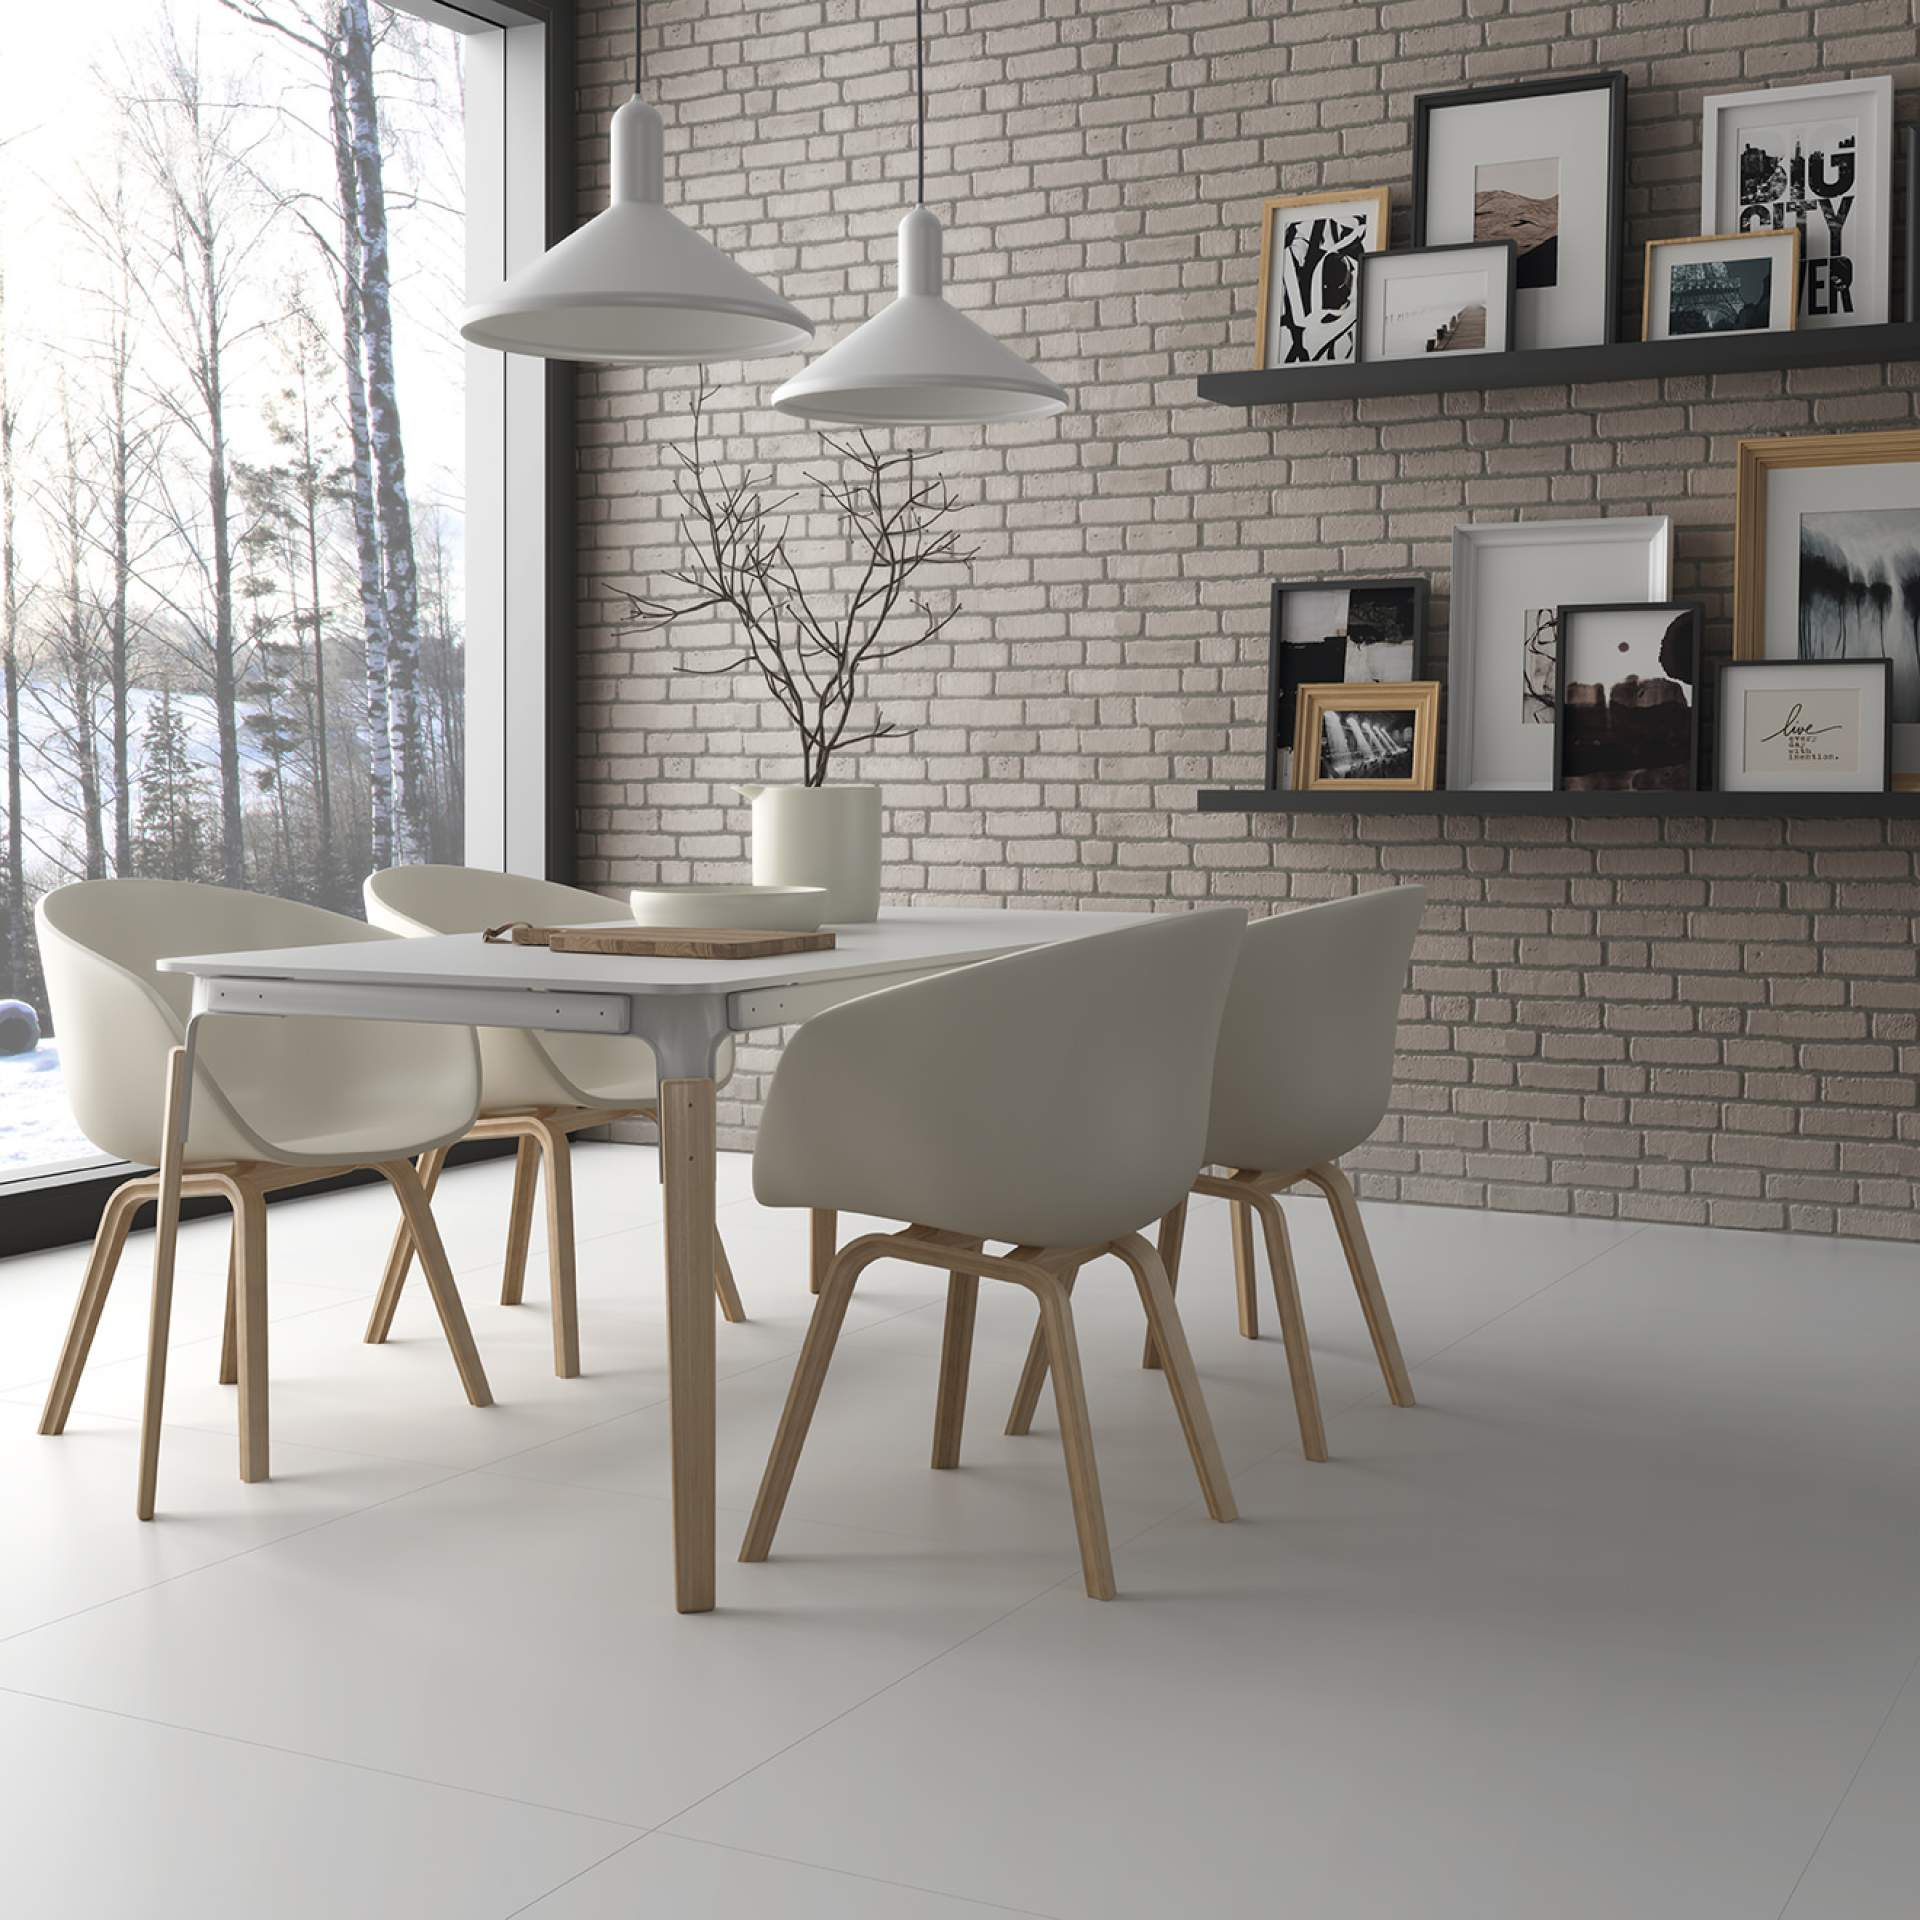 Blank Dining Room setting using White Natural Tile